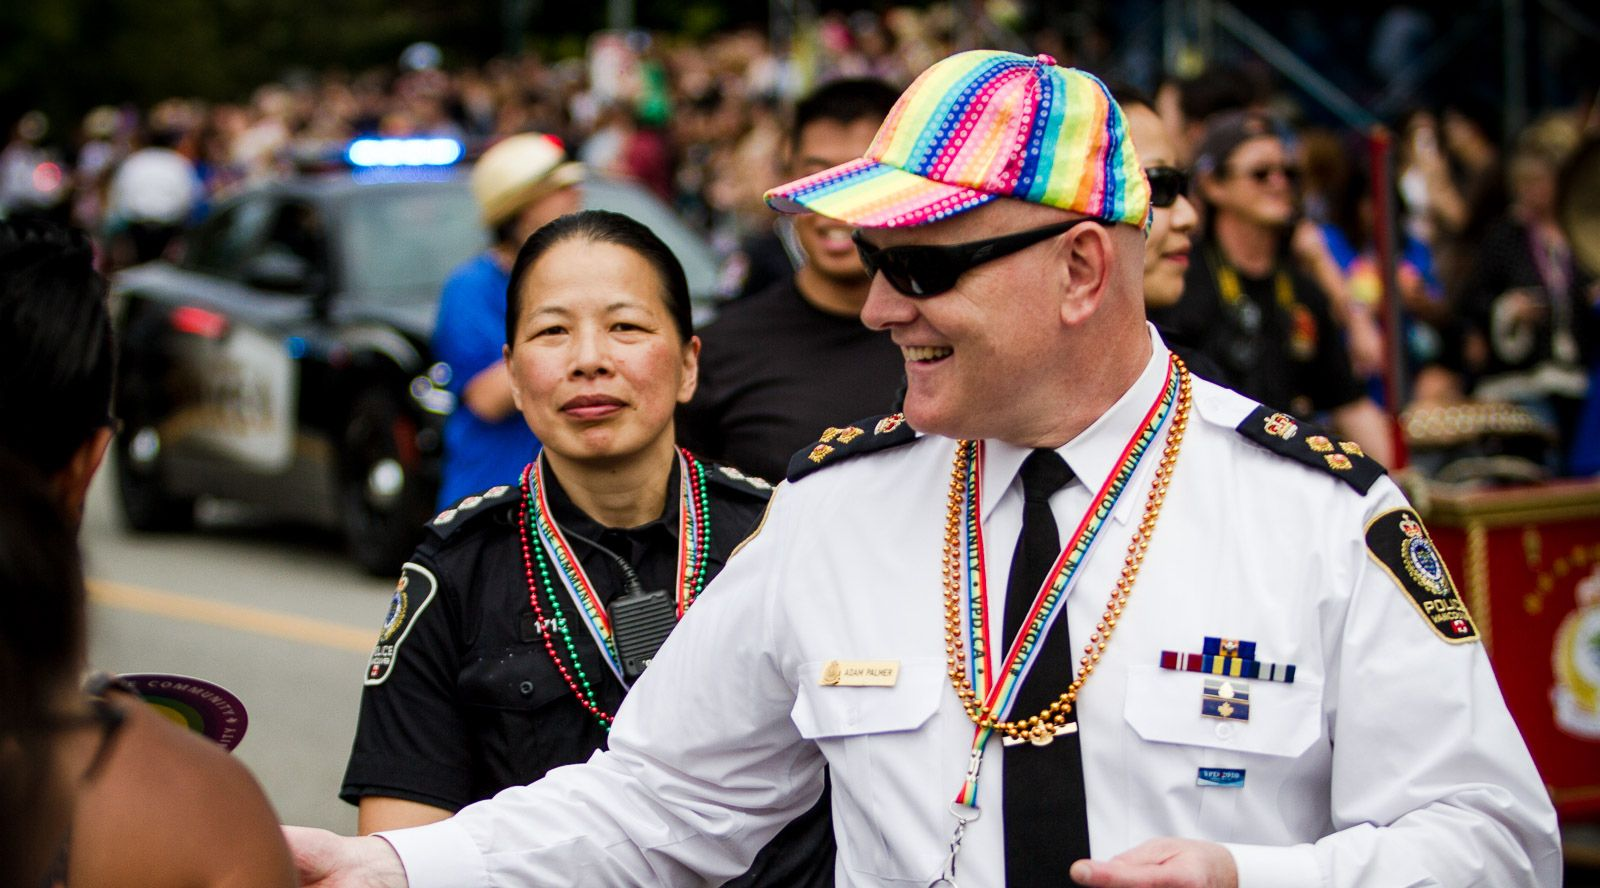 Vancouver police chief adam palmer at the pride parade in 2016 dustan sept flickr